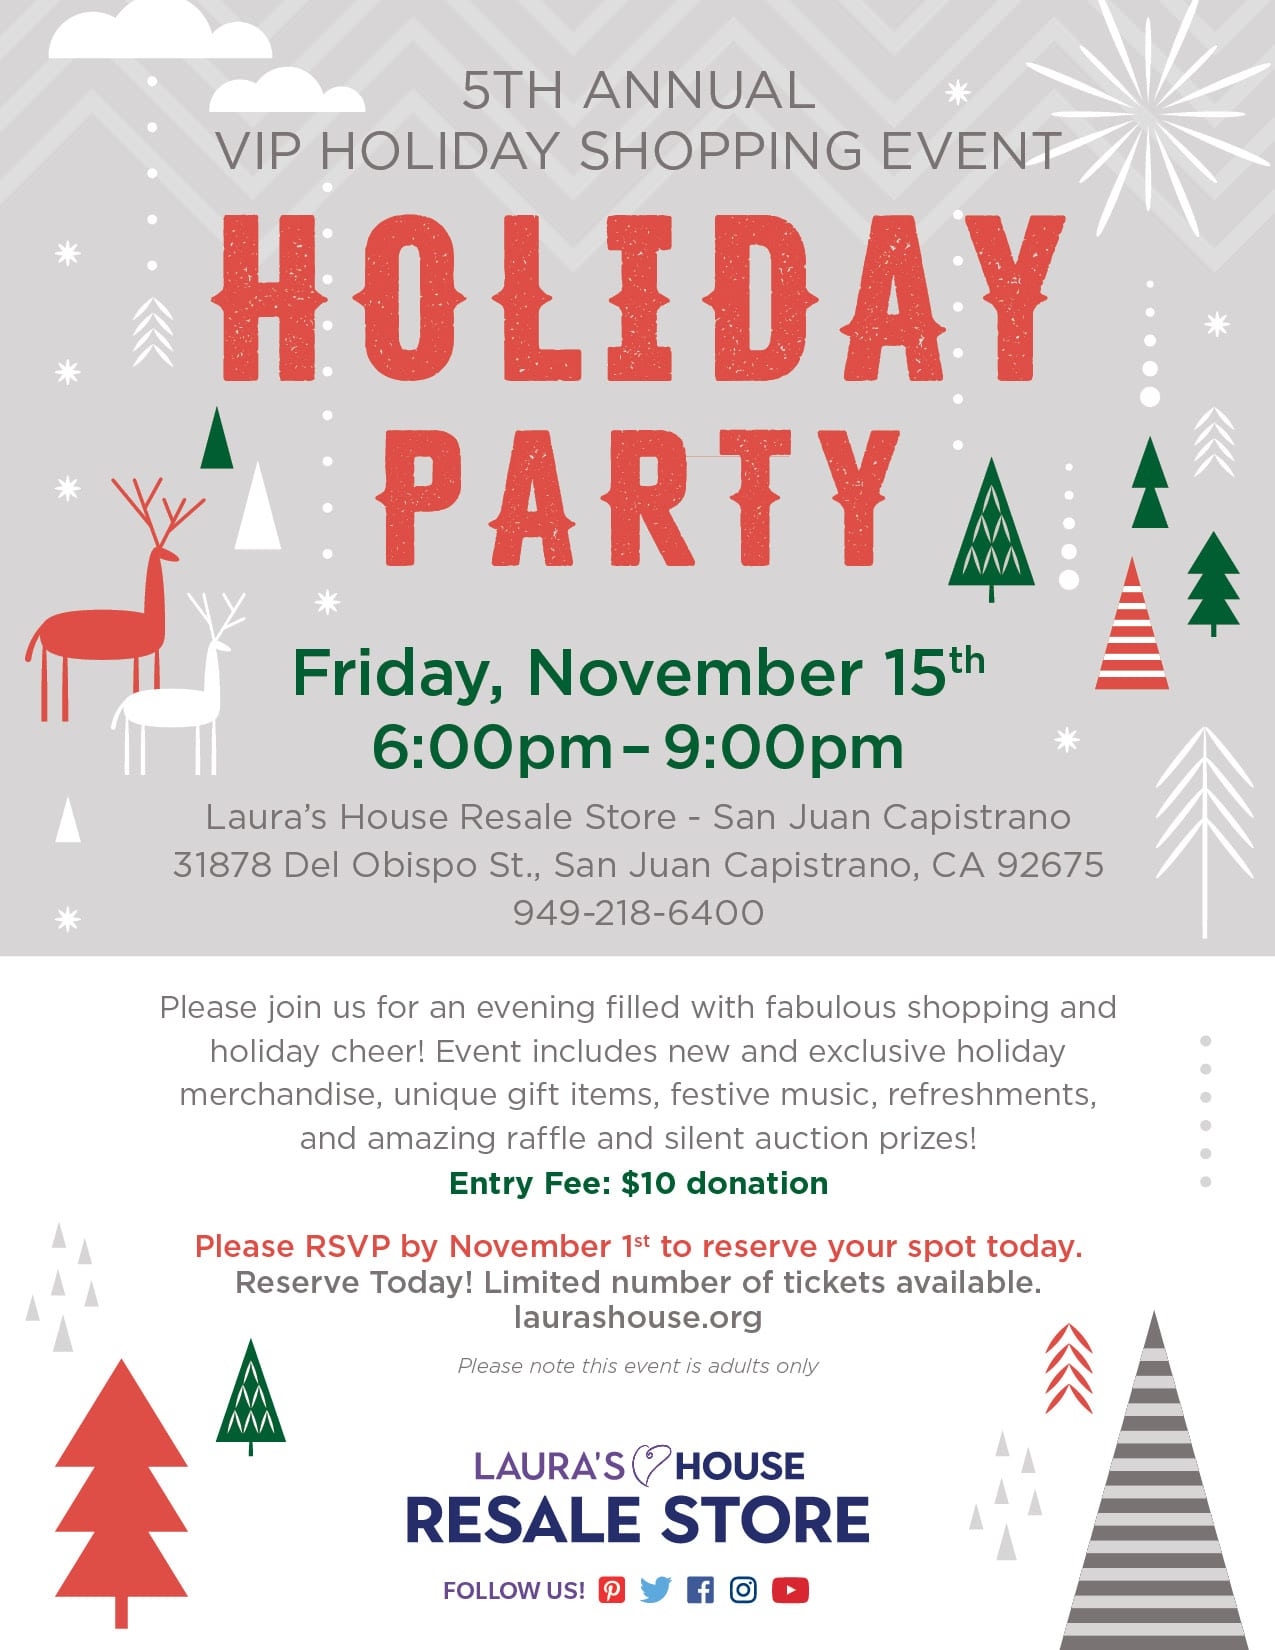 Enjoy a special preview of our holiday merchandise, special promotions, auction and opportunity drawings! Tickets $10. VIP Holiday Shopping - 5th Annual. Friday, November 15 2020, 6pm-9pm